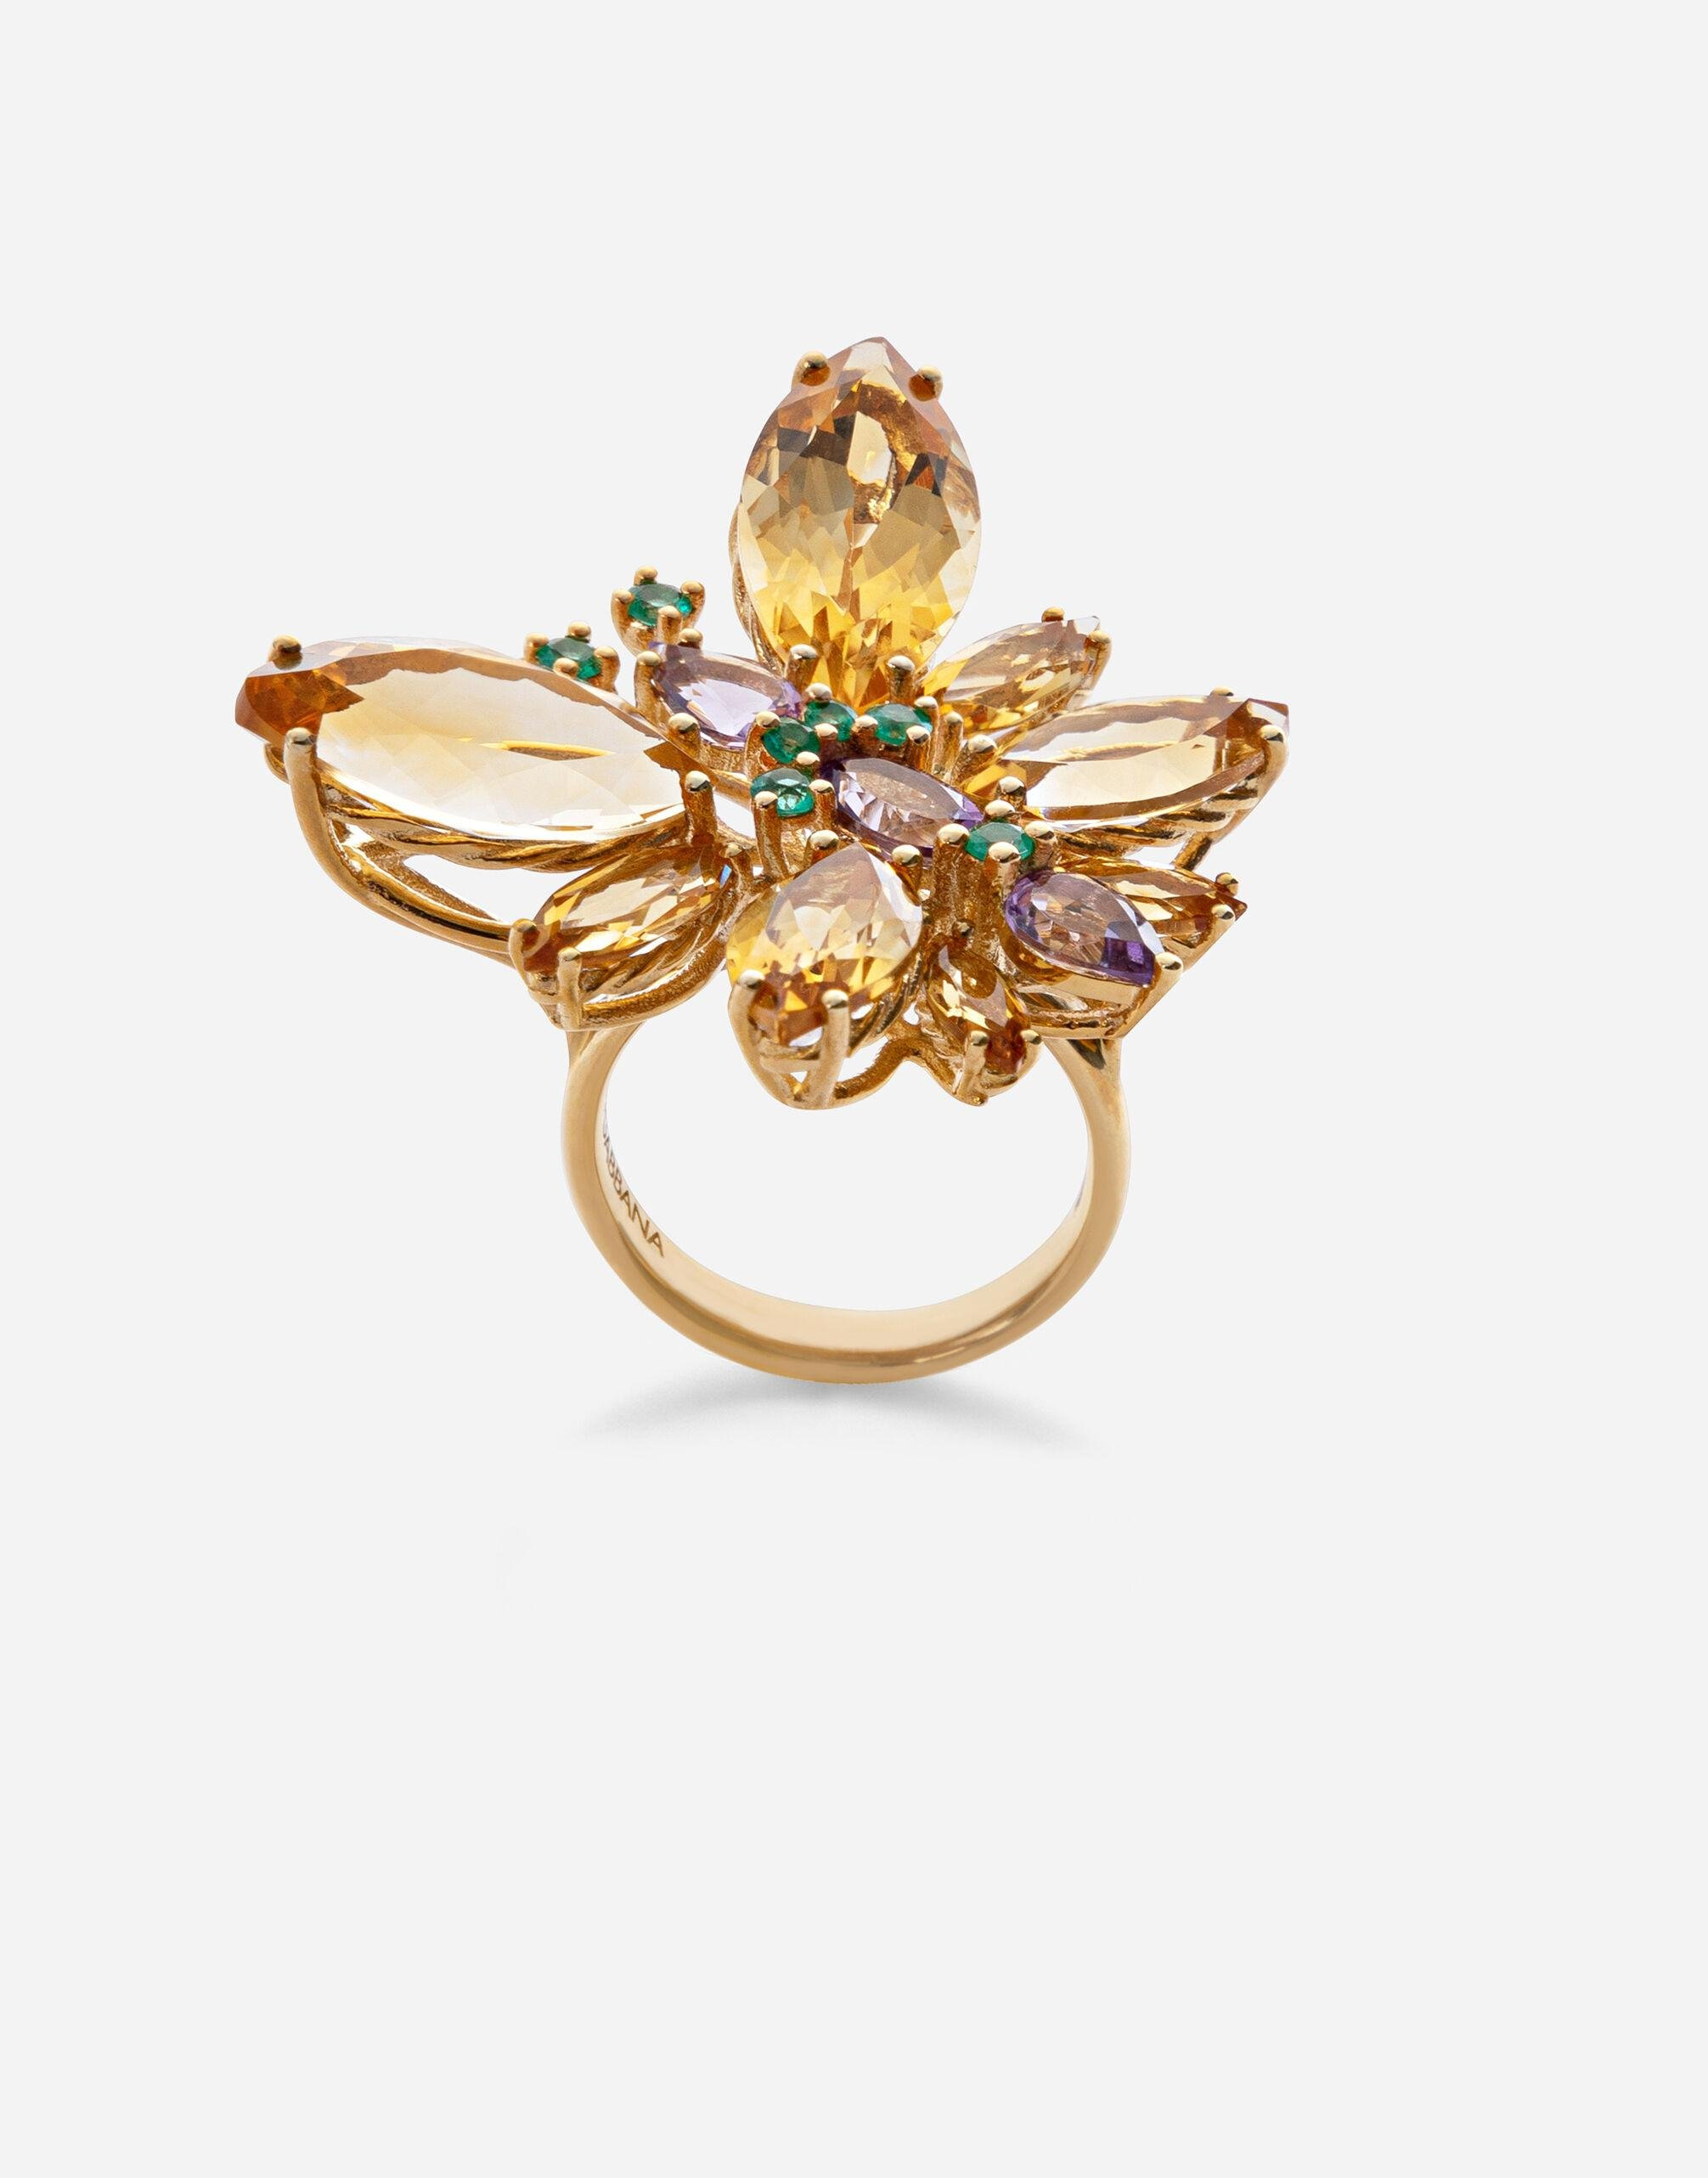 Spring ring in yellow 18kt gold with citrine butterfly